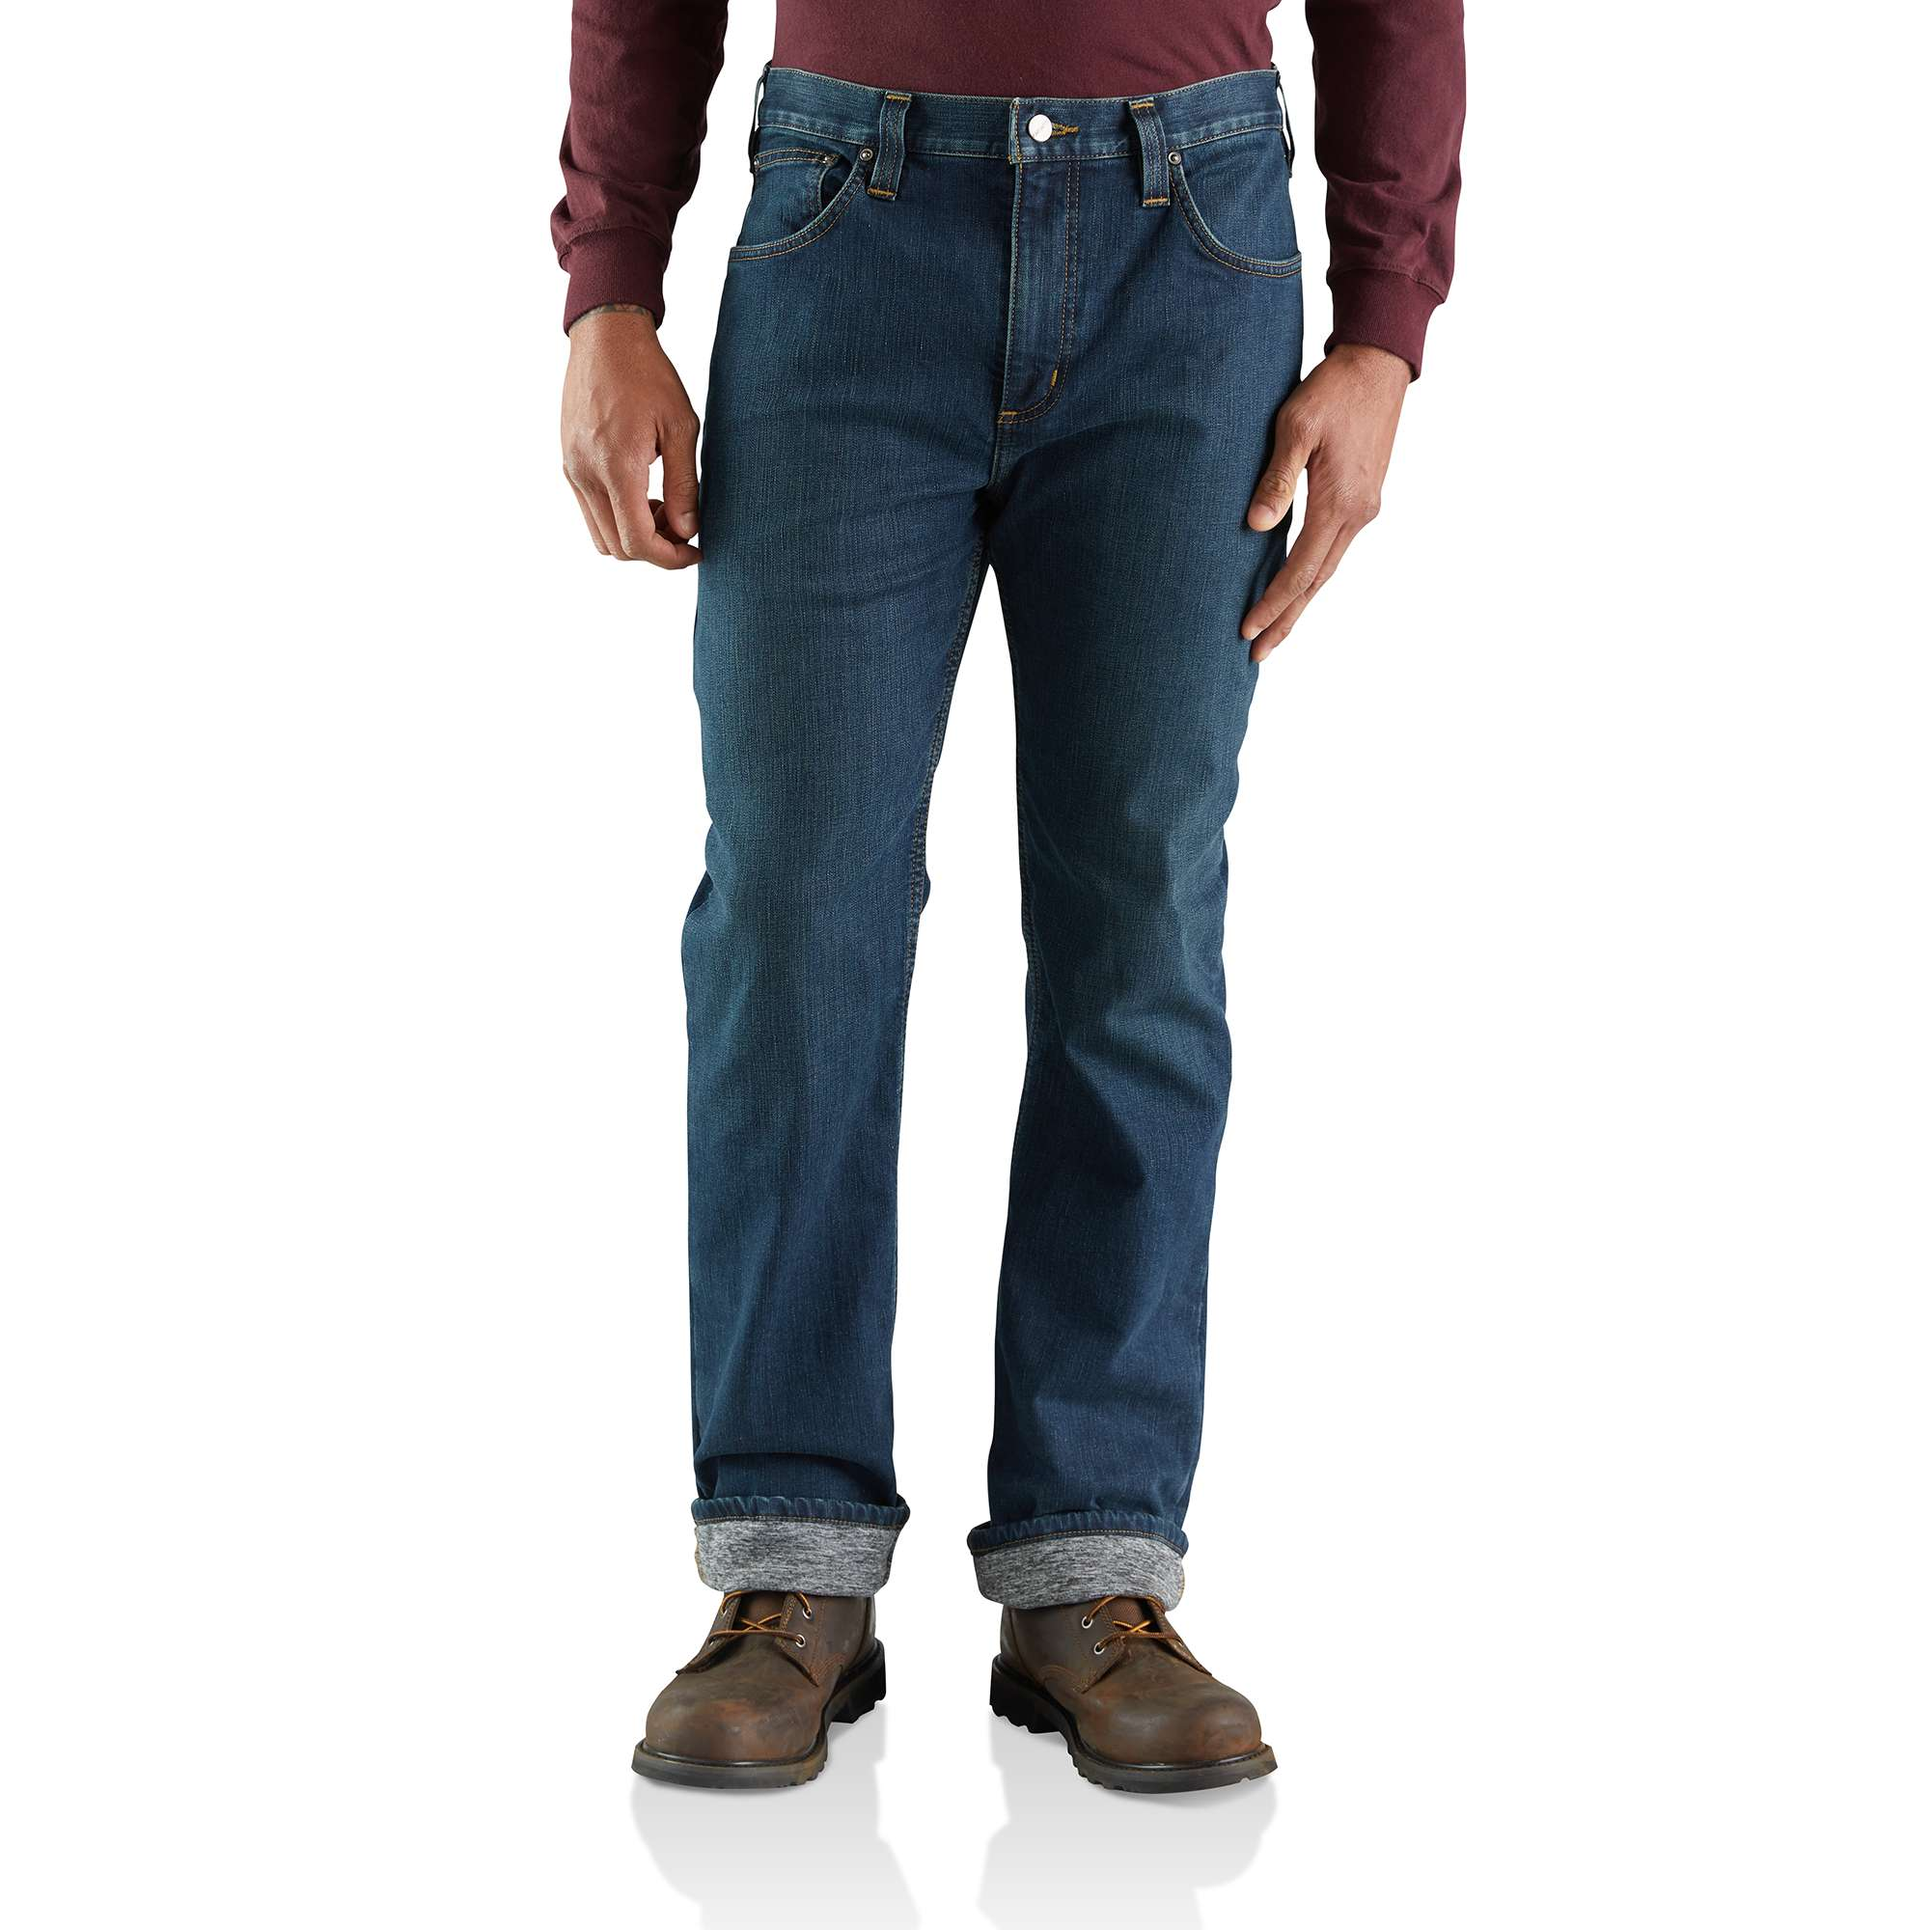 Carhartt Rugged Flex Relaxed Straight Jean Knit-Lined